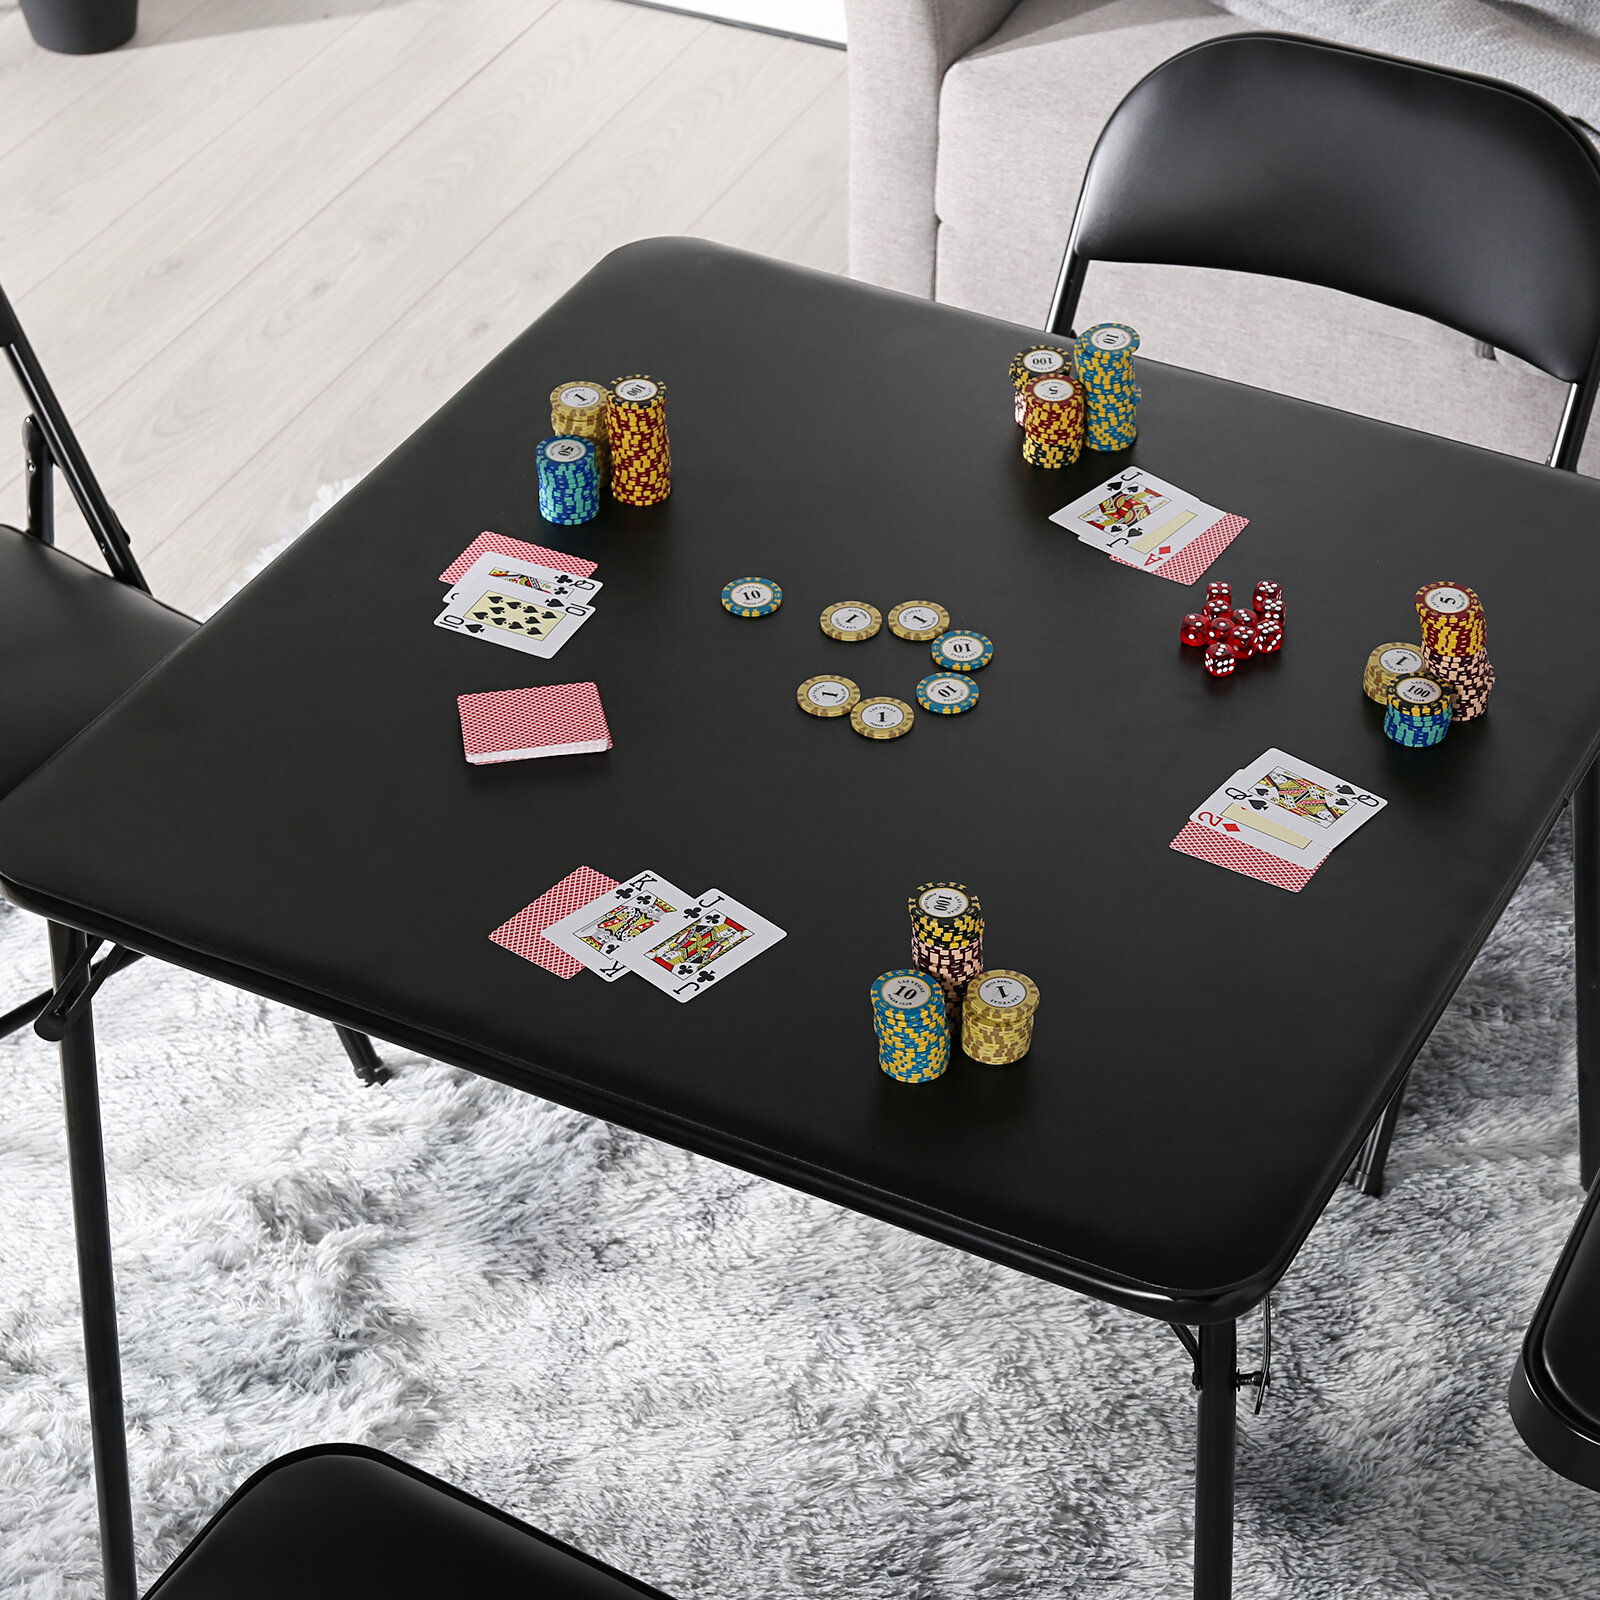 BIG SALE] Poker & Casino Tables for Less You'll Love In 2021 | Wayfair